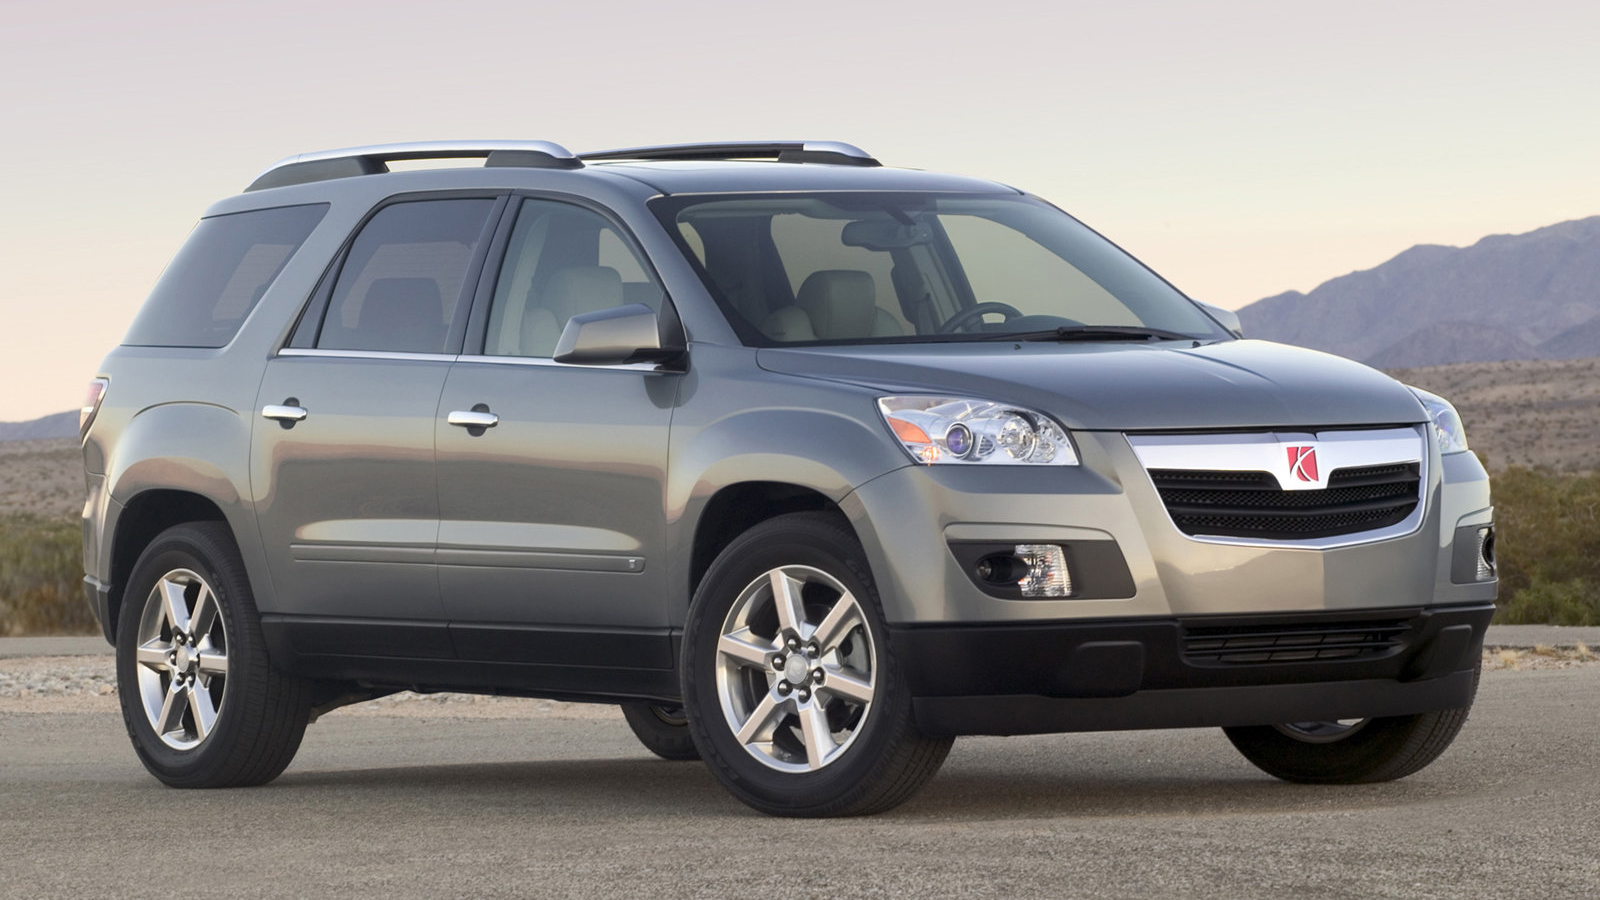 Gmc Acadia Vs Chevrolet Tahoe